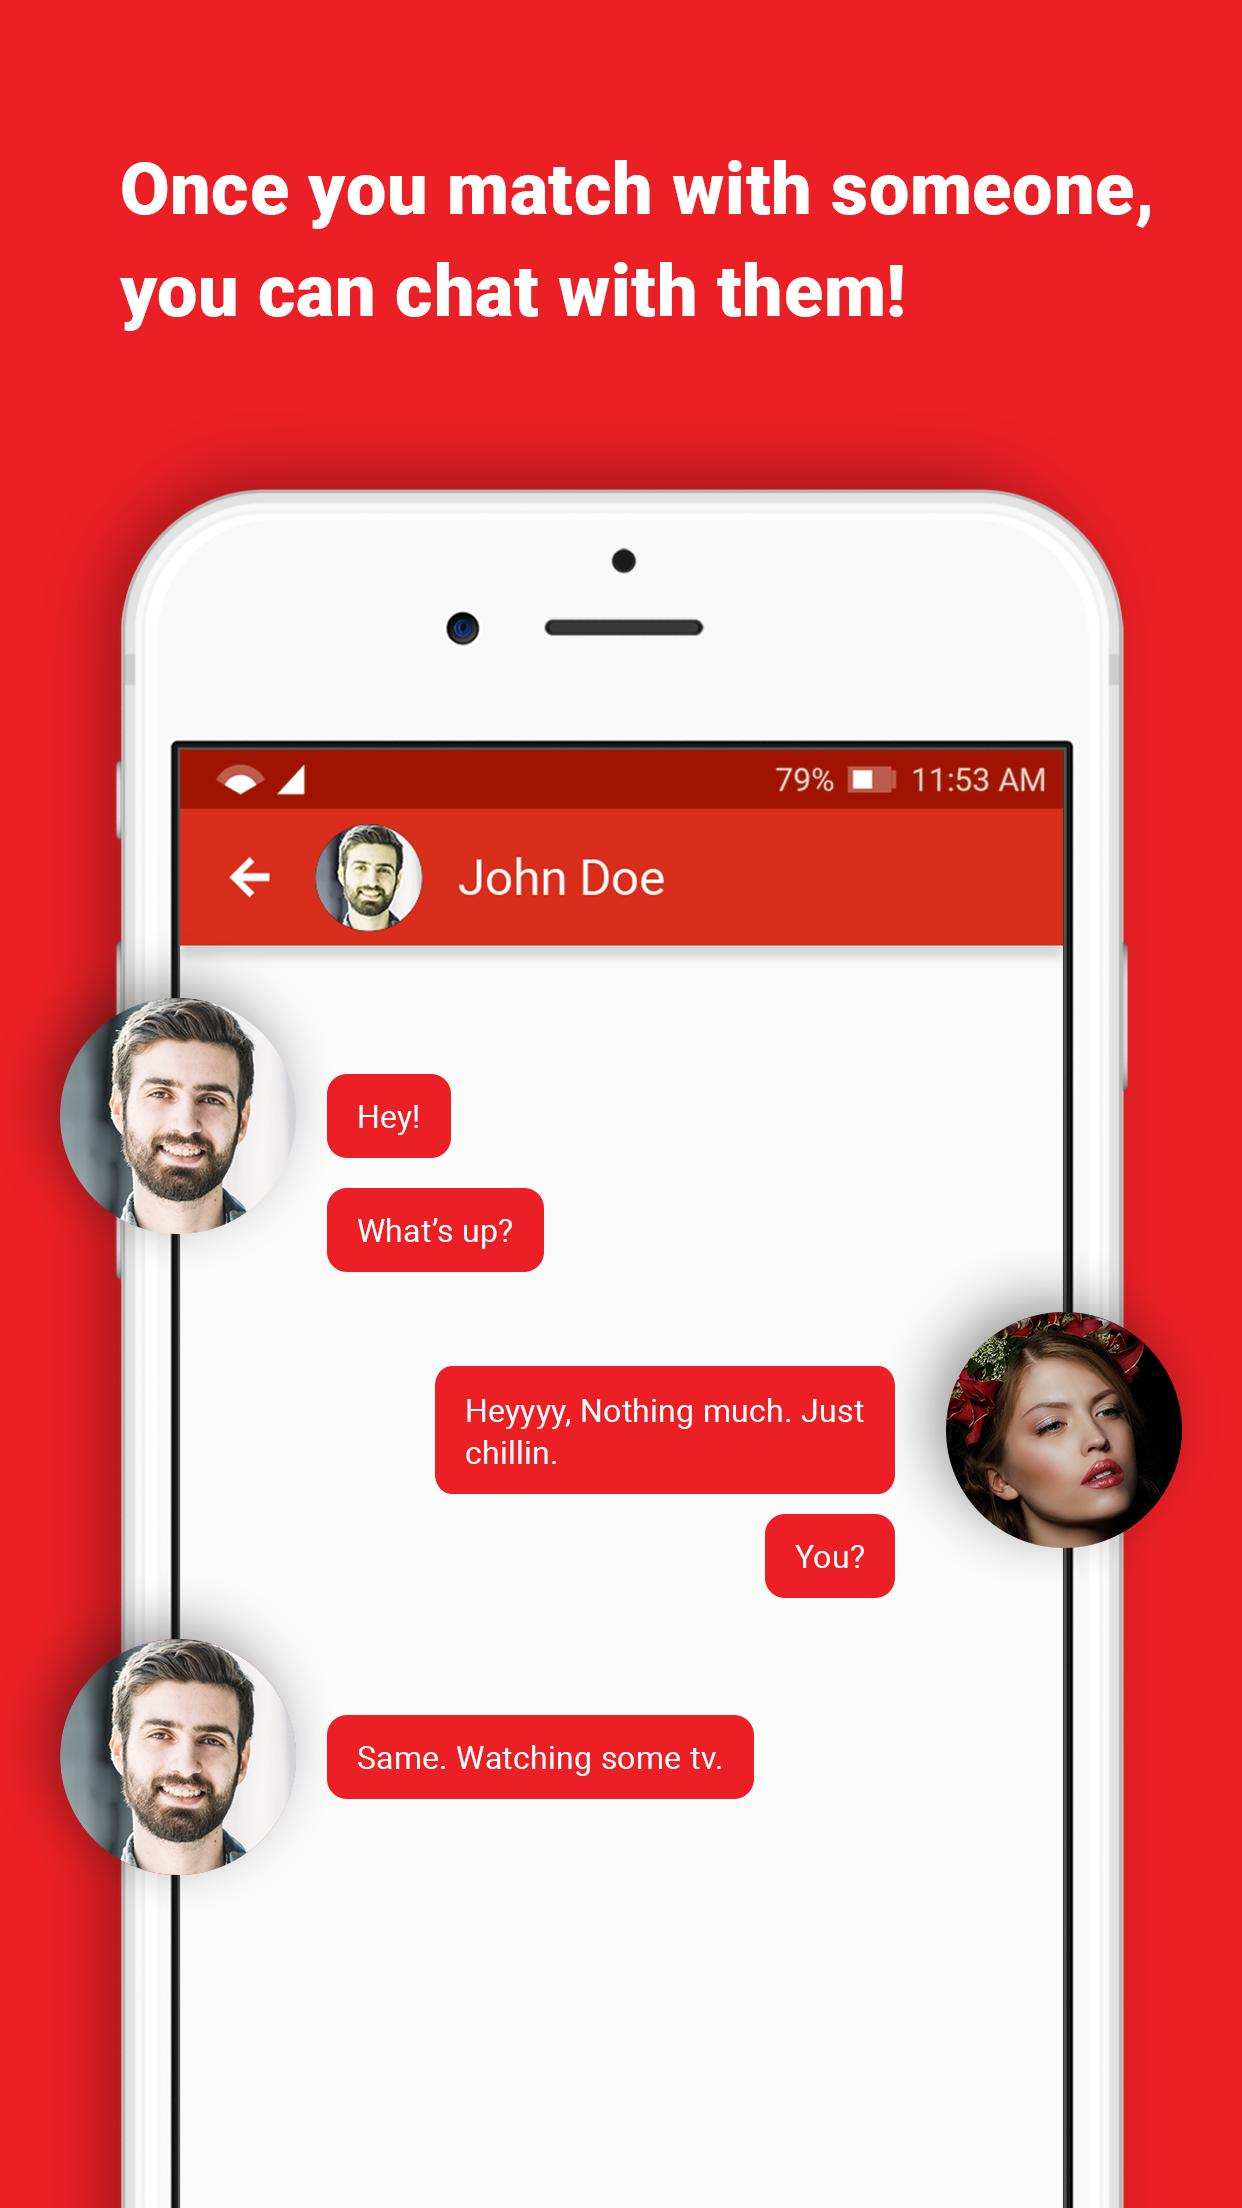 Spark Networks SE closes its 8M purchase of dating brand Zoosk   CMI Stuparu